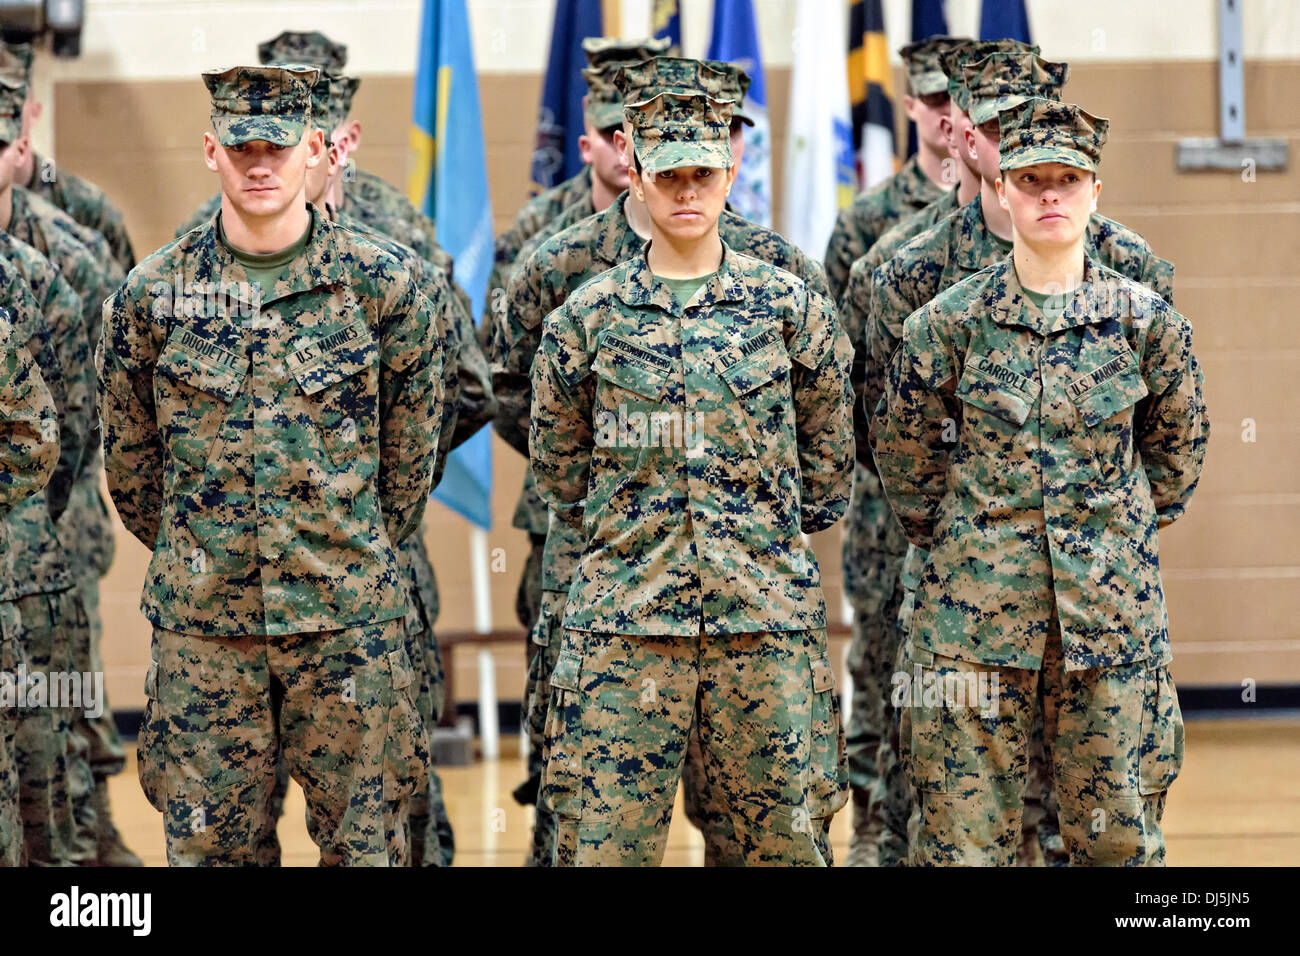 Pfc. Cristina Fuentes Montenegro, left, and Pfc. Julia Carroll, two of the first three female Marine graduates from Stock Photo